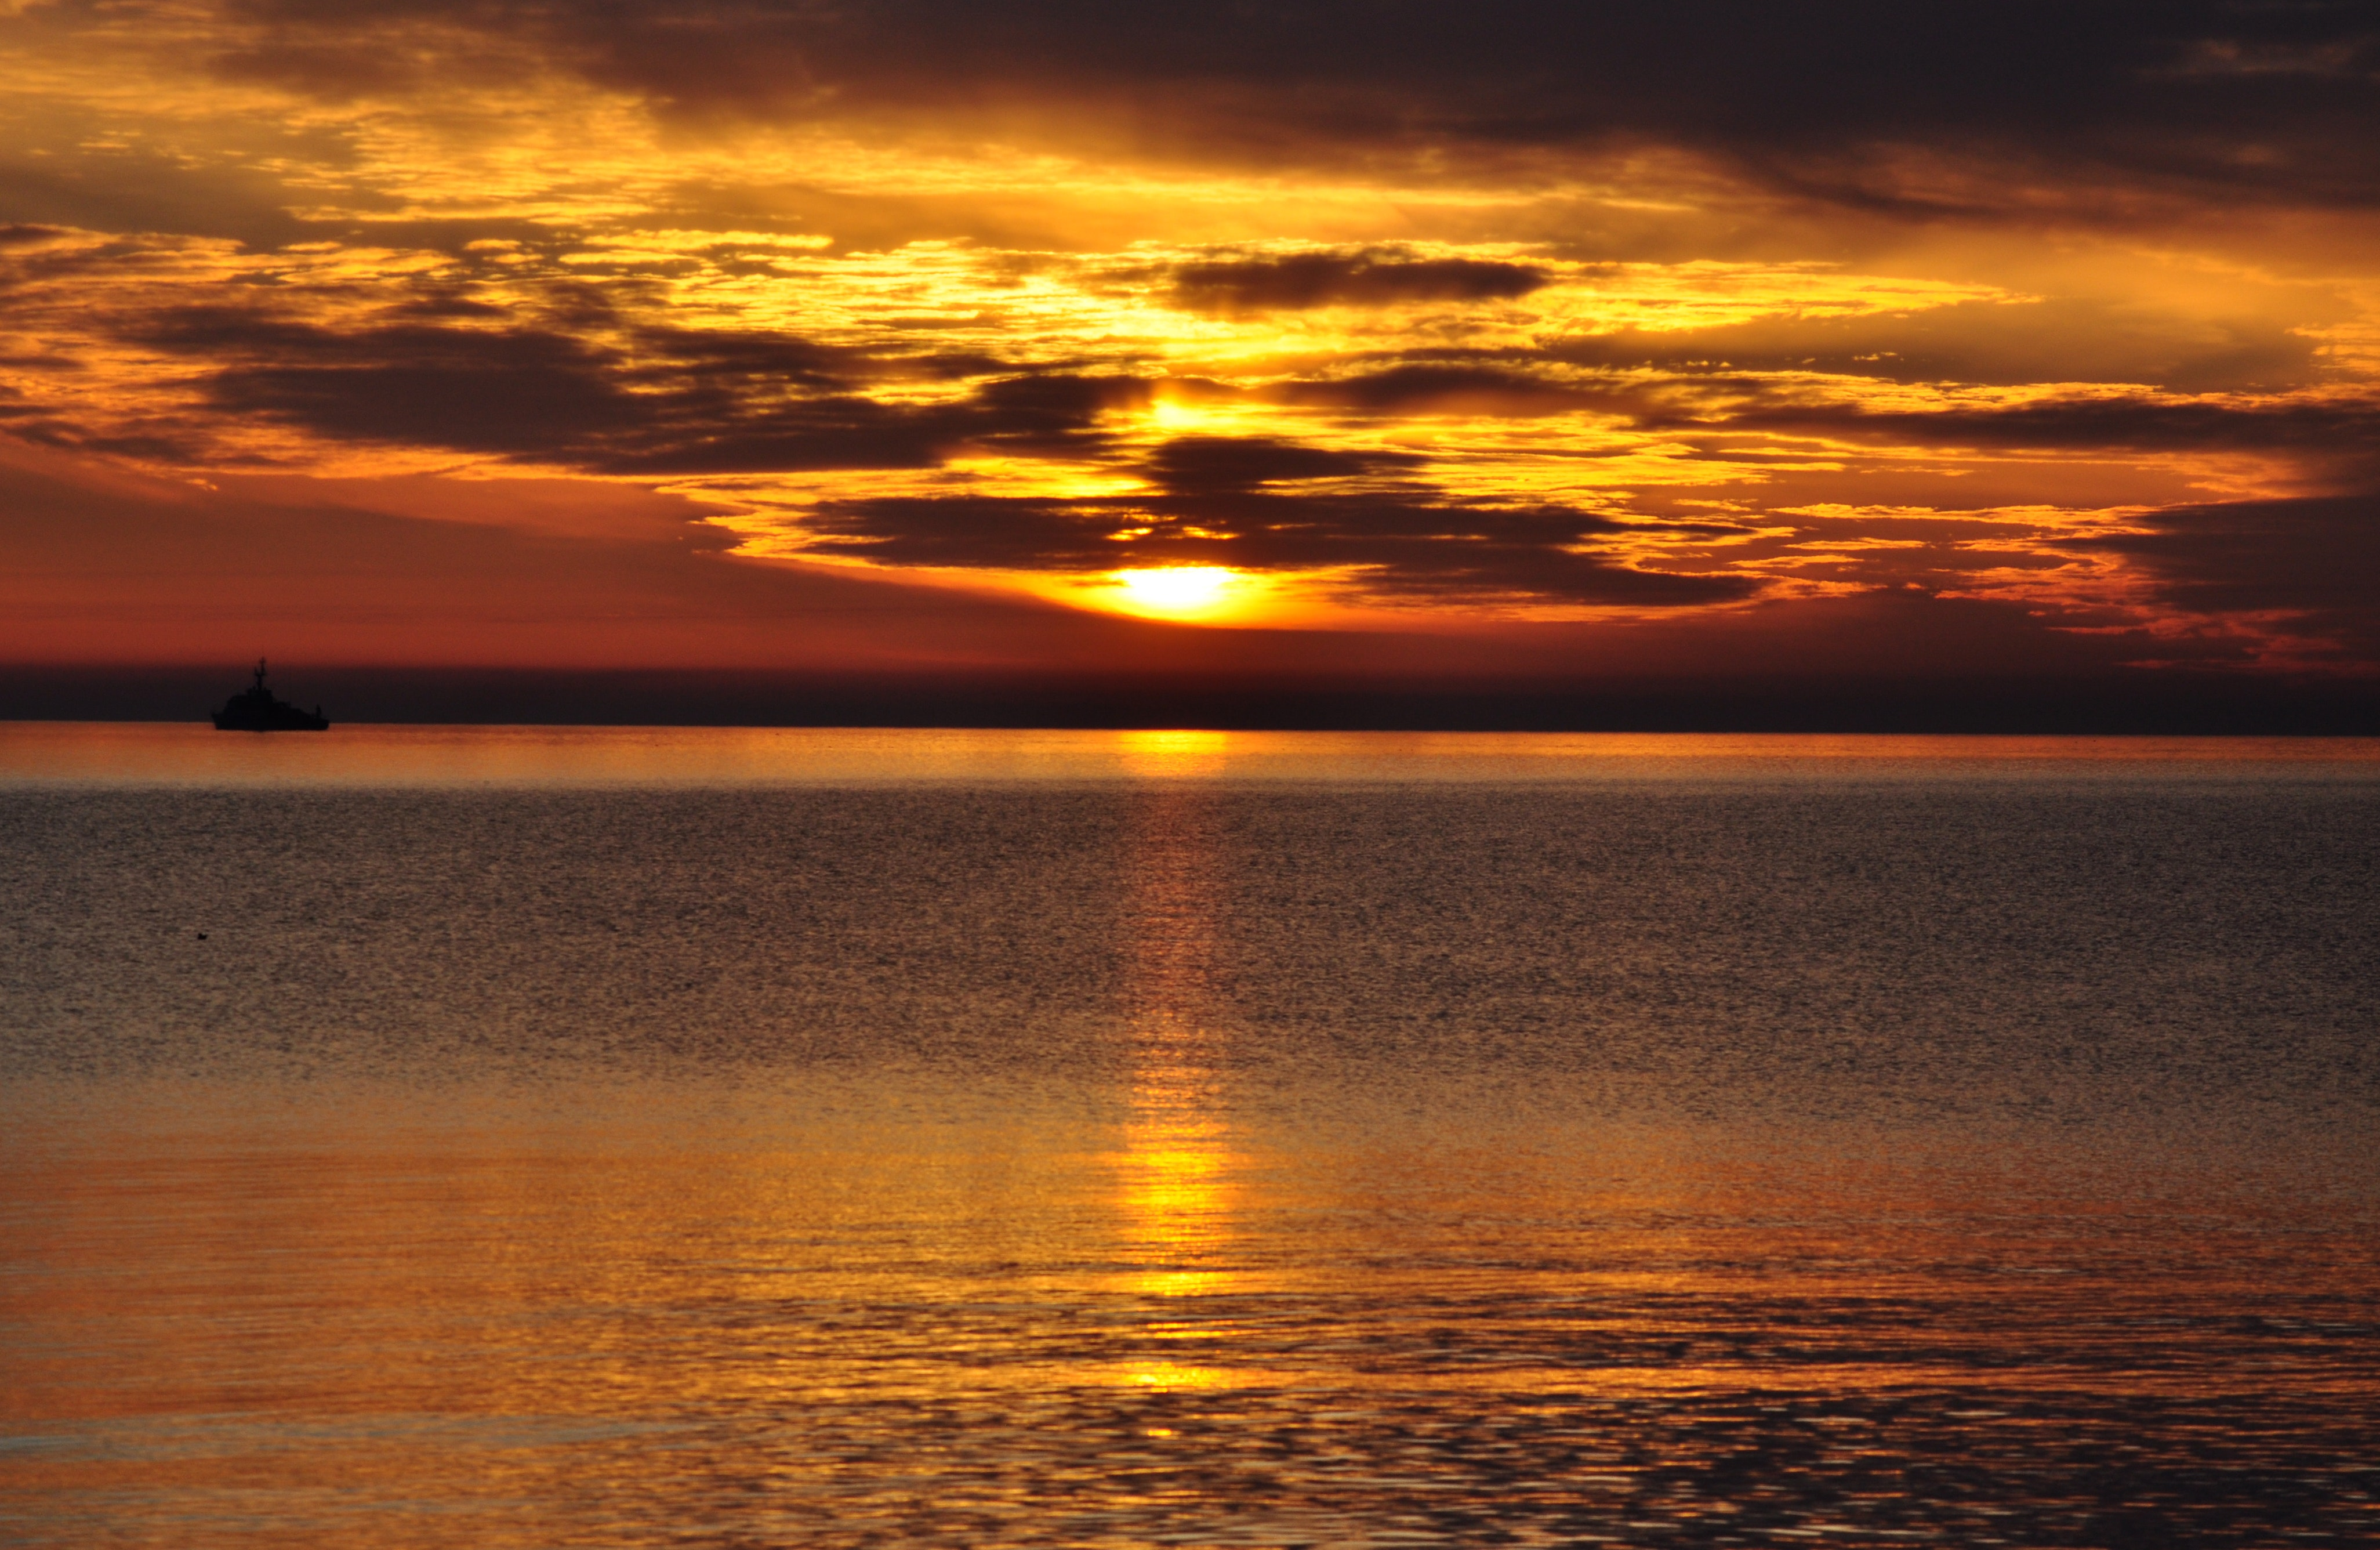 Sun Rise over the Horizer, Backlit, Reflections, Sunset, Sun, HQ Photo